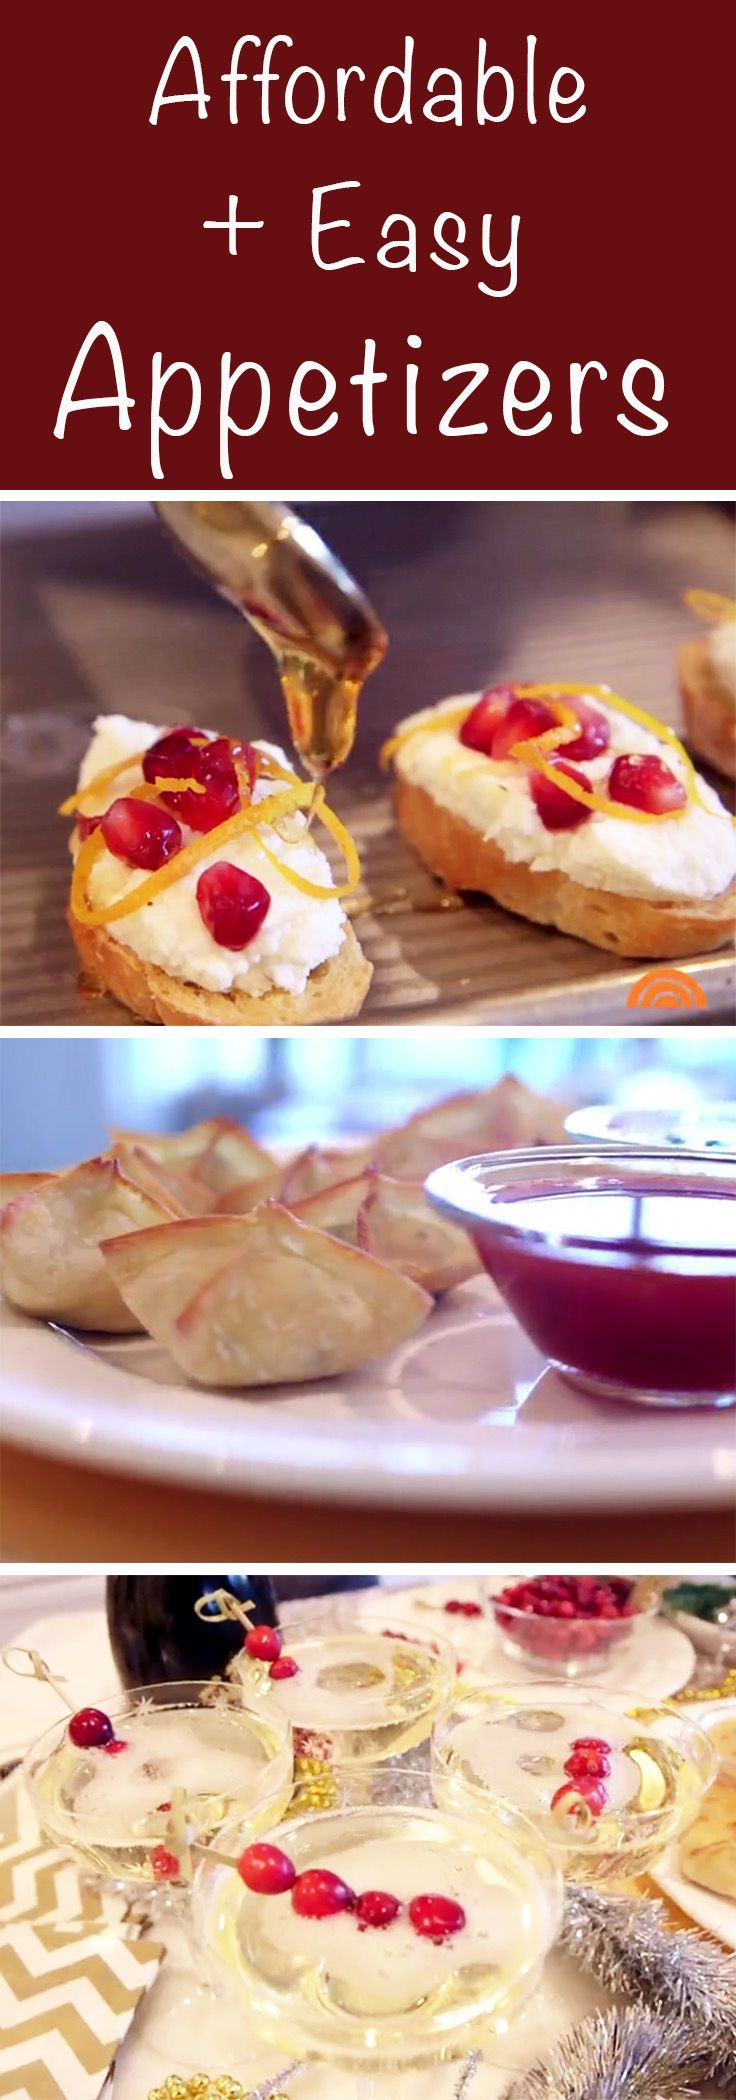 New Year S Eve On A Budget Try These Cheap But Fancy Appetizers Fancy Appetizers New Years Eve Snacks Party Food On A Budget